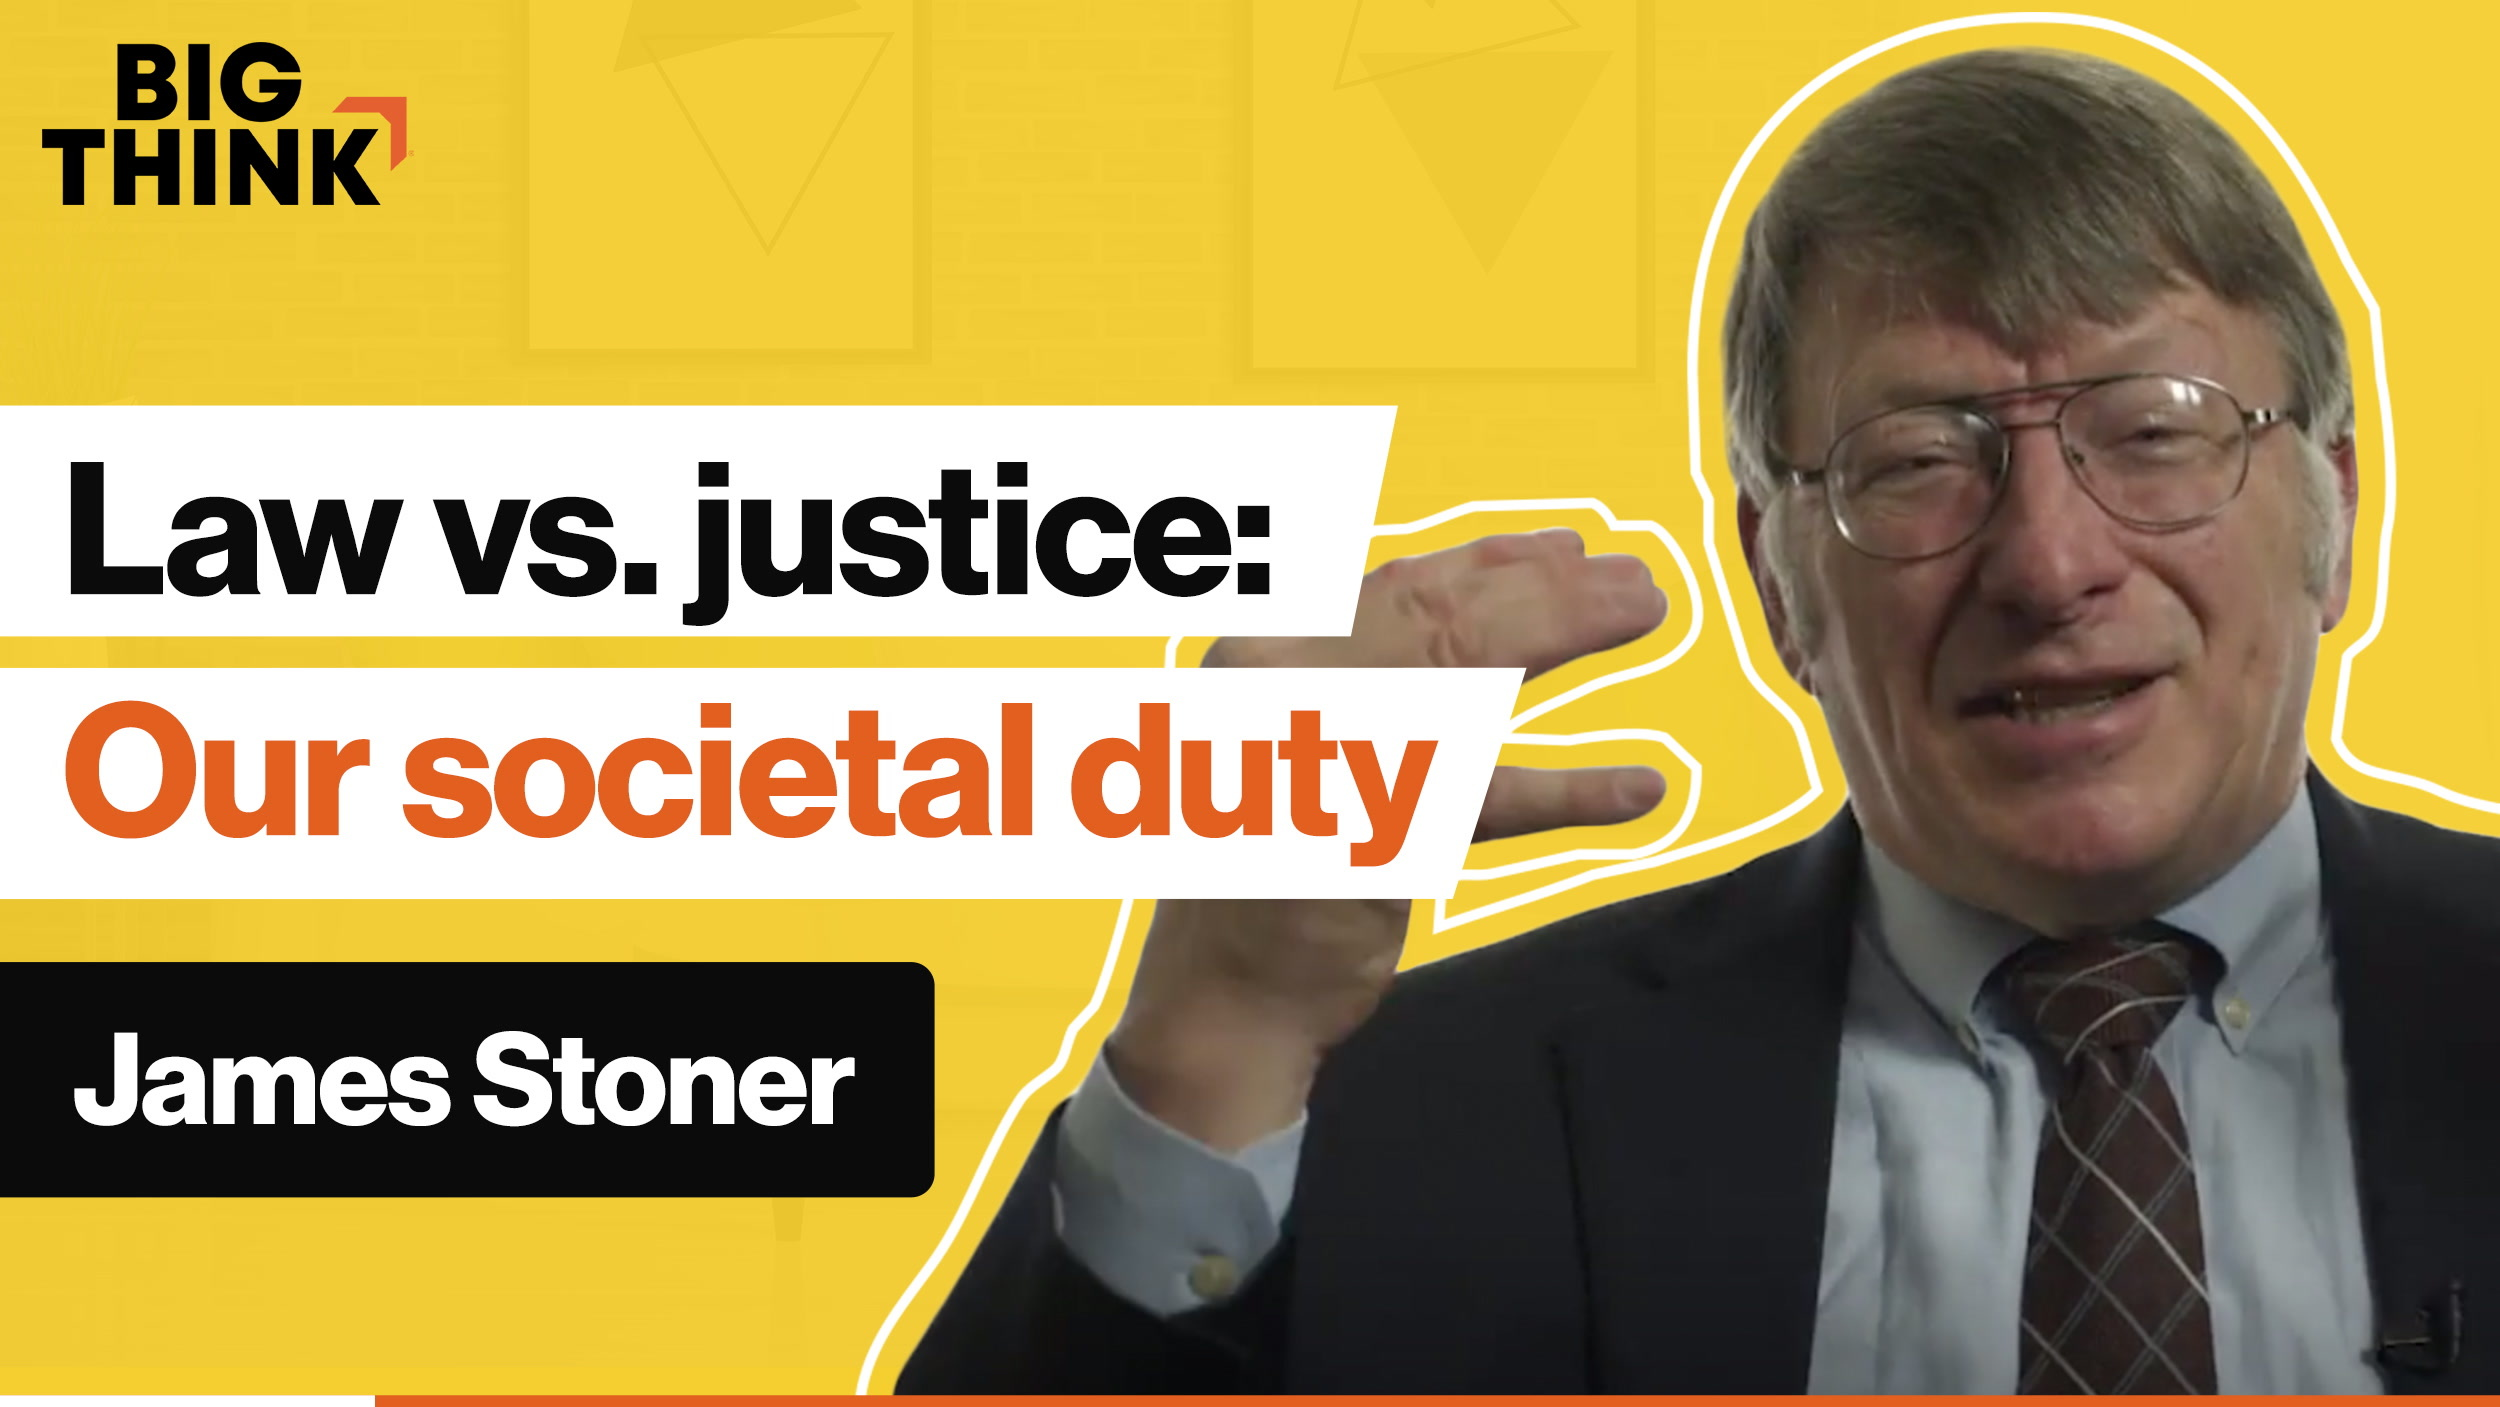 Law vs. justice: What is our duty in society?